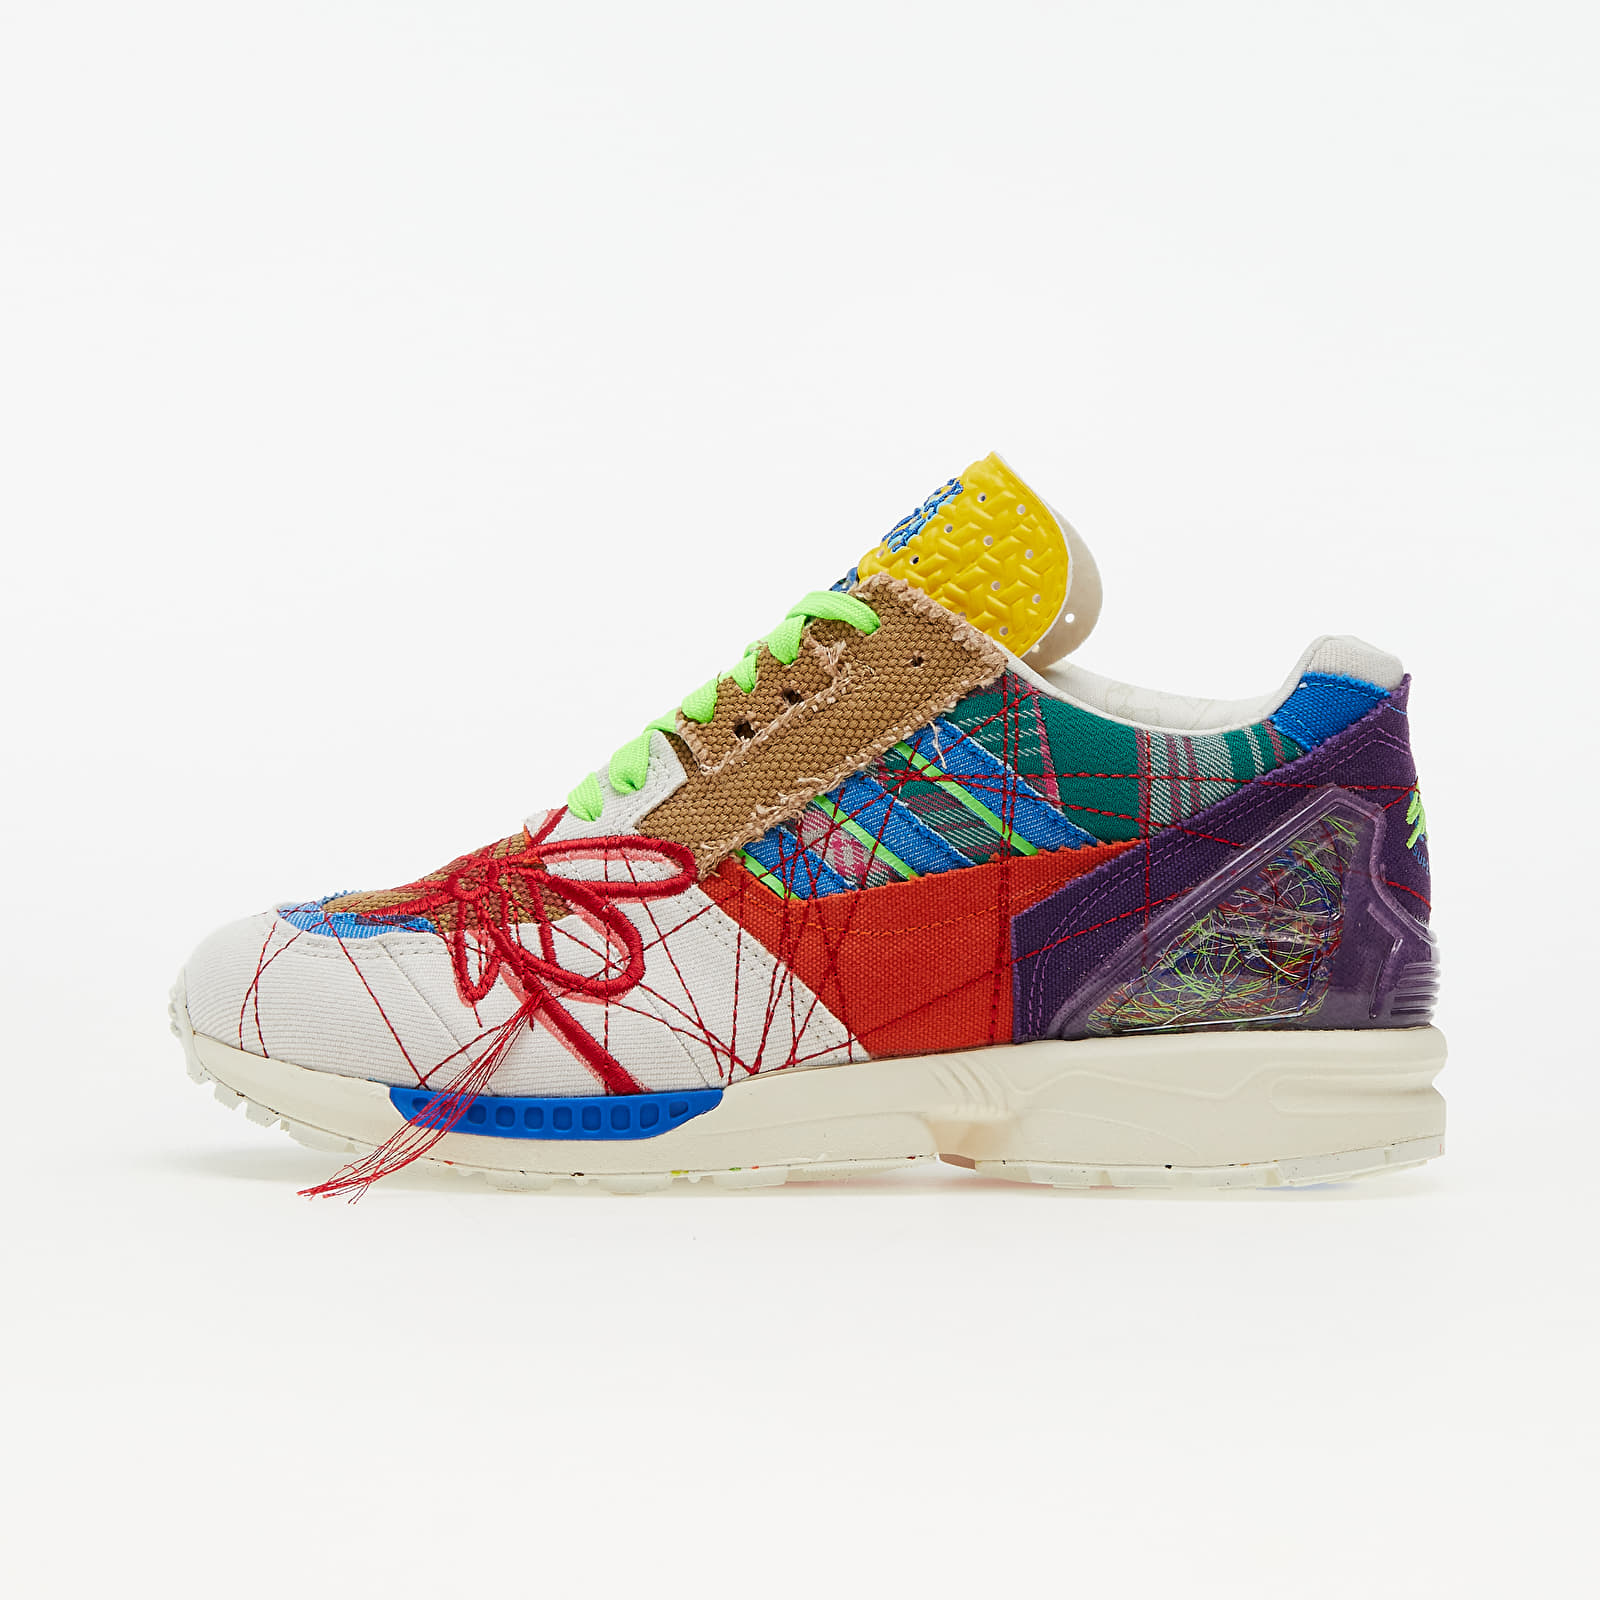 """adidas x Sean Wotherspoon ZX 8000 """"Superearth"""" Off White/ Blue Bird/ Red EUR 38 2/3"""